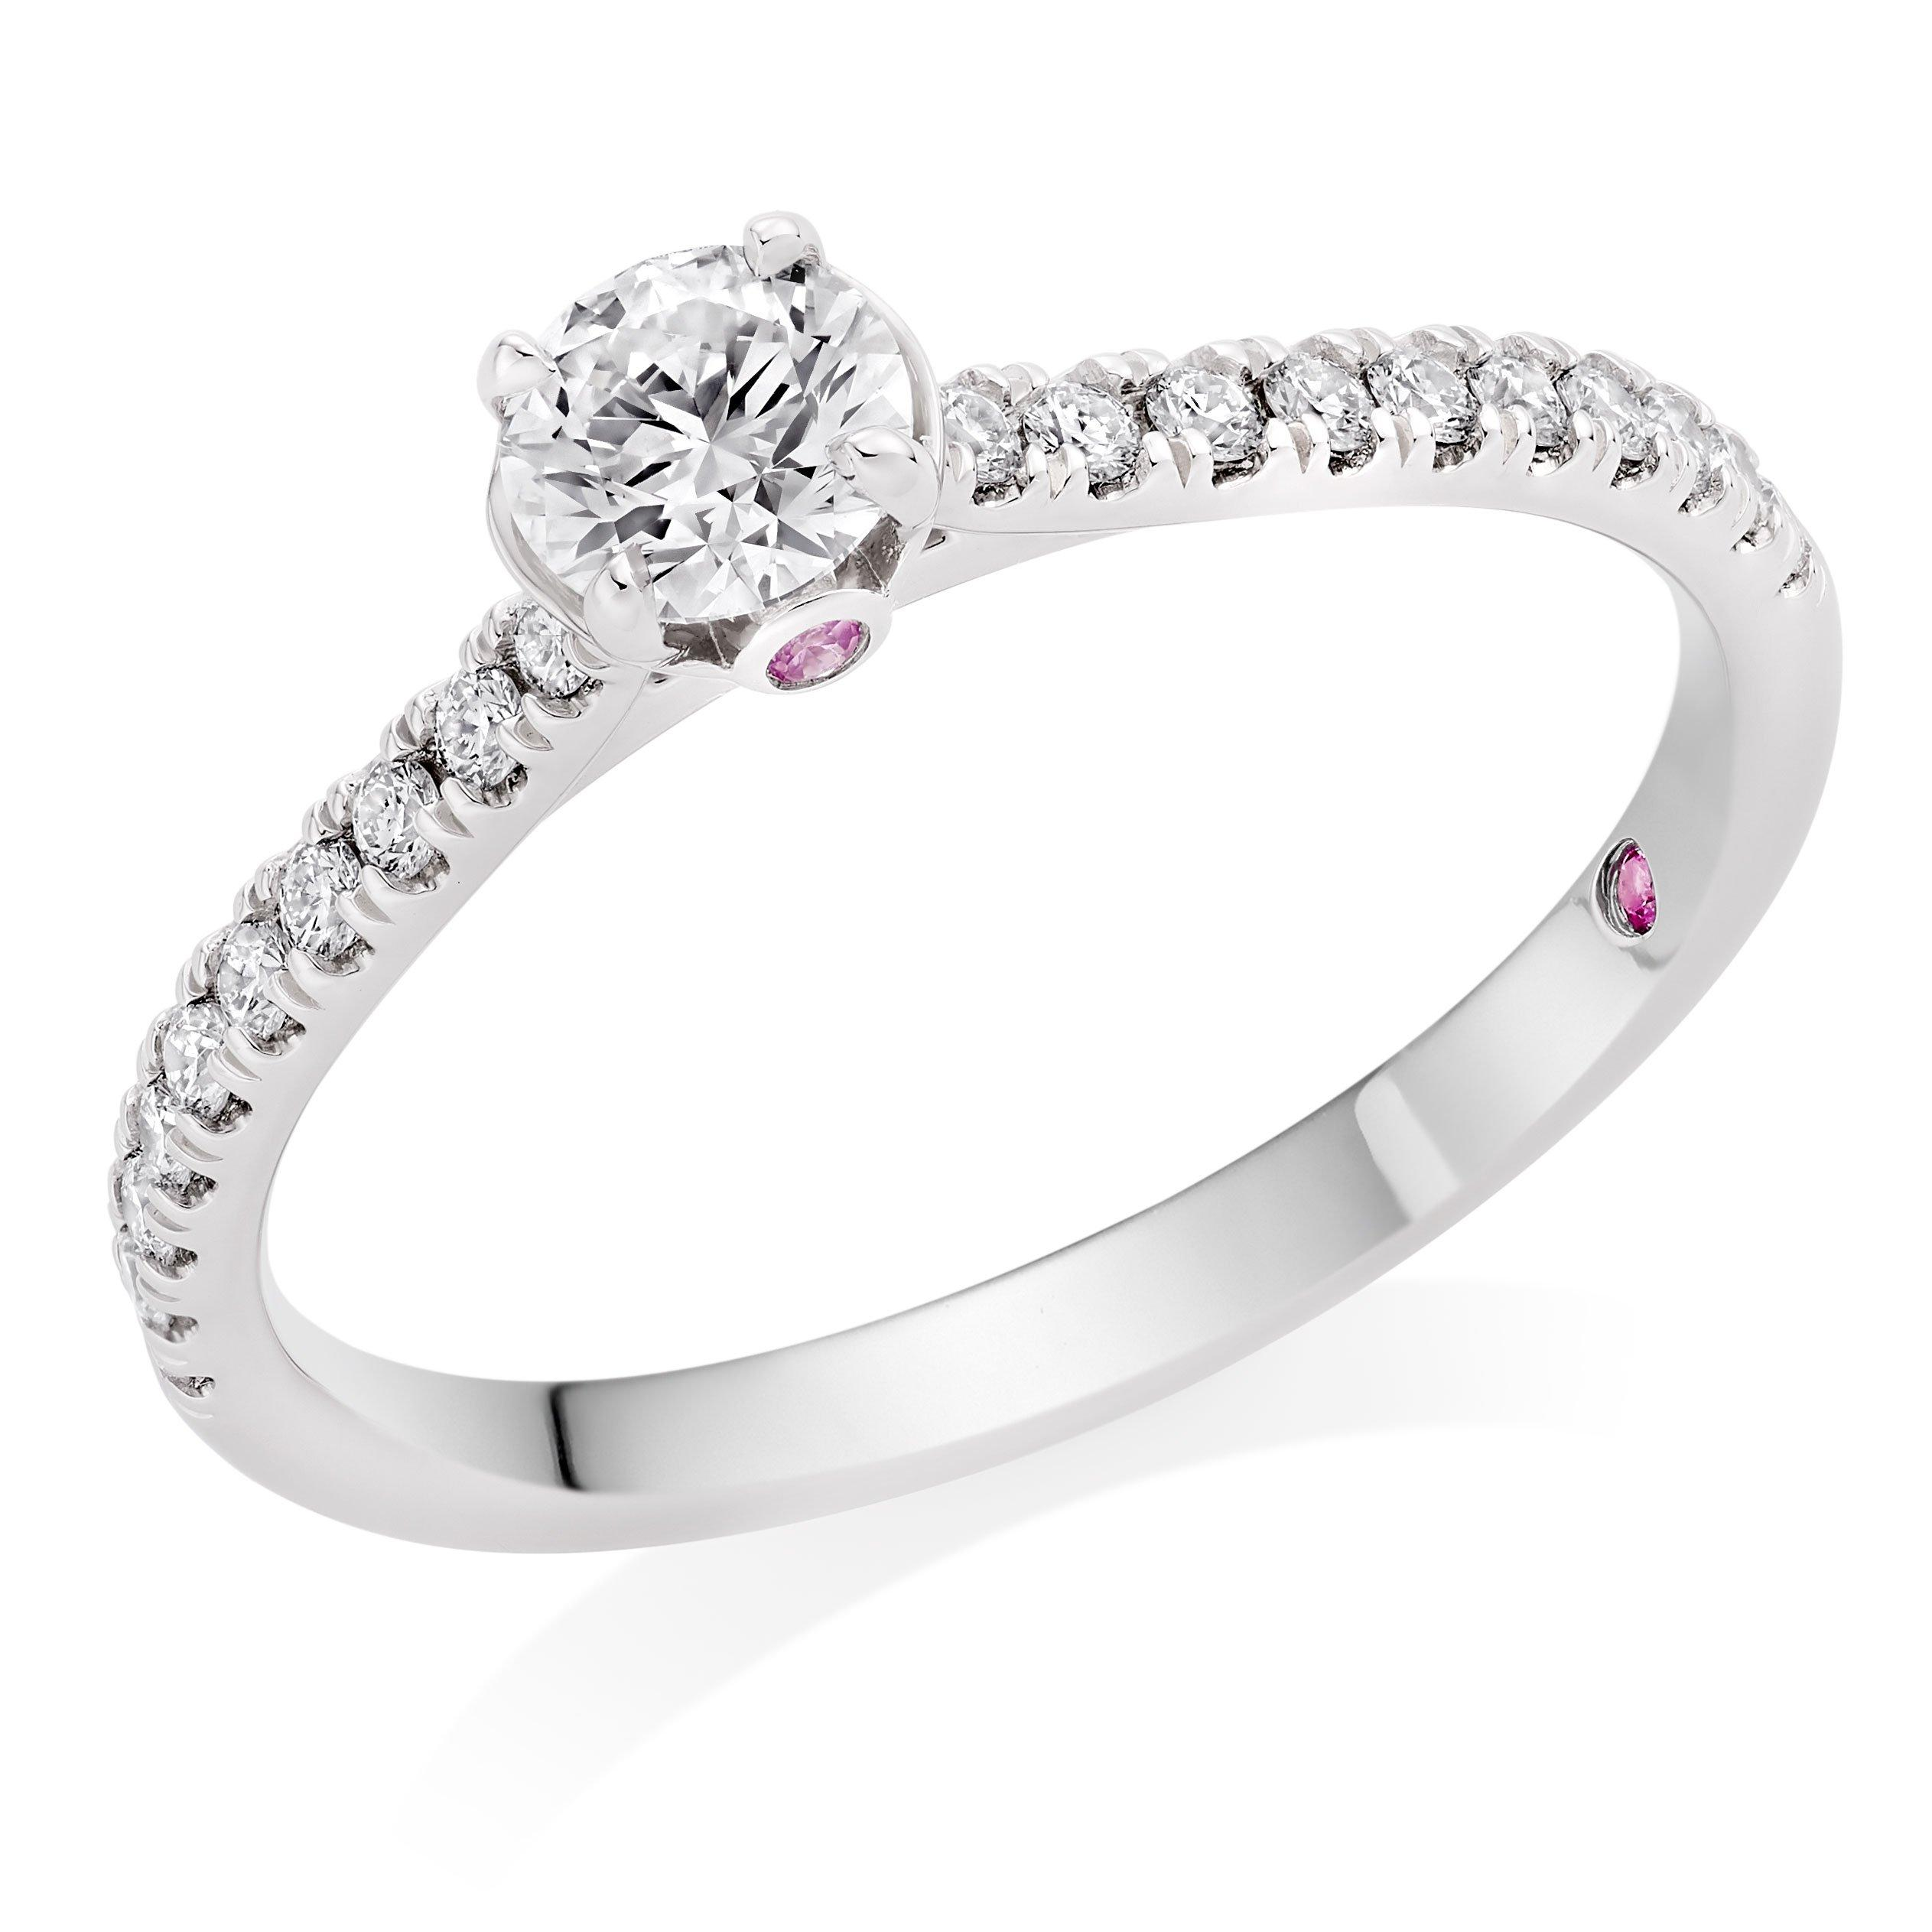 Hearts On Fire Hayley Paige Sloane Platinum Diamond Solitaire Ring